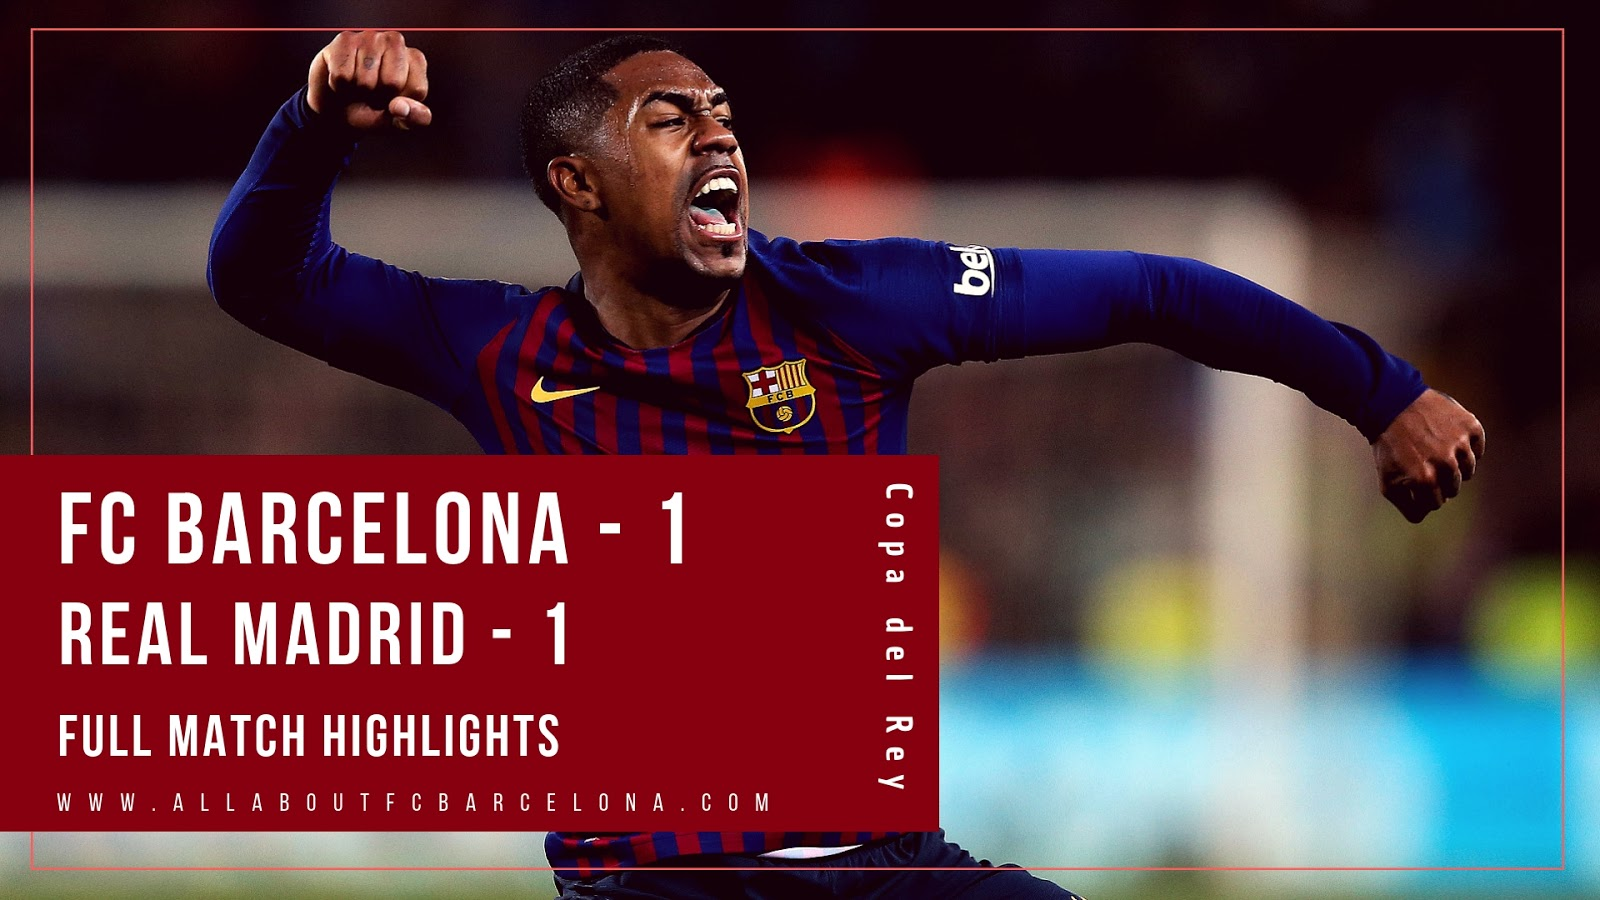 FCBarcelona-1-realMadrid-1-Full-Match-Highlights-Video